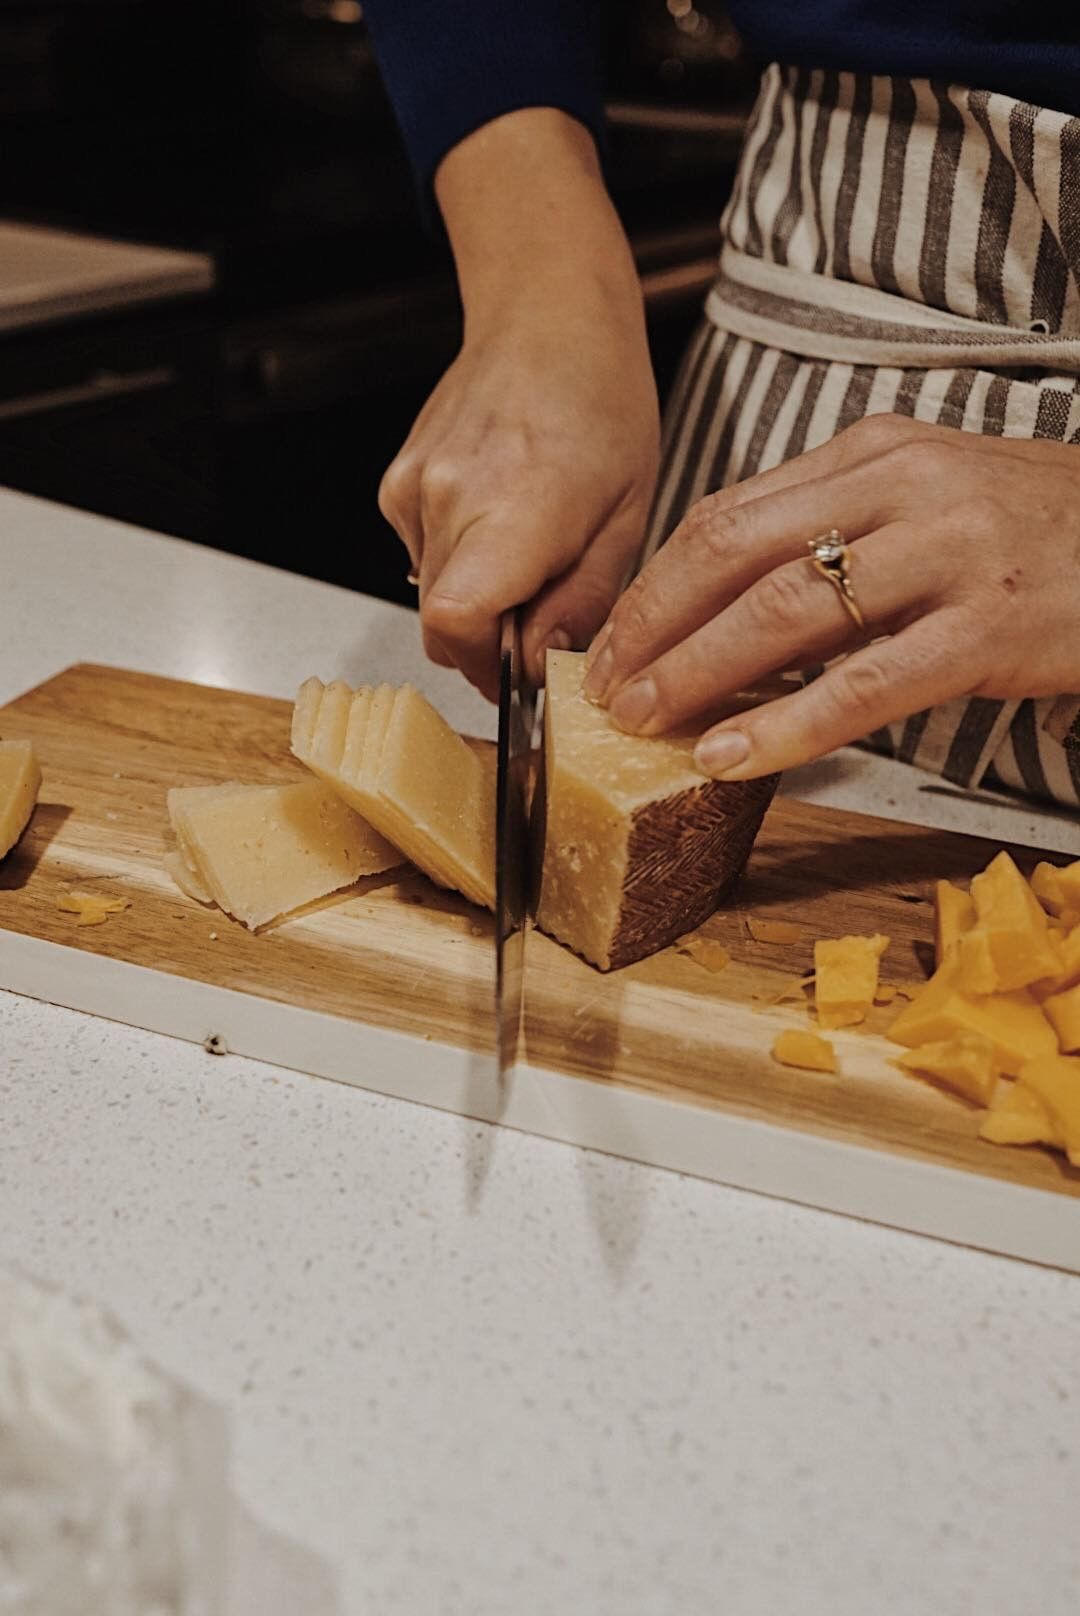 Photograph of someone assembling a cheese board